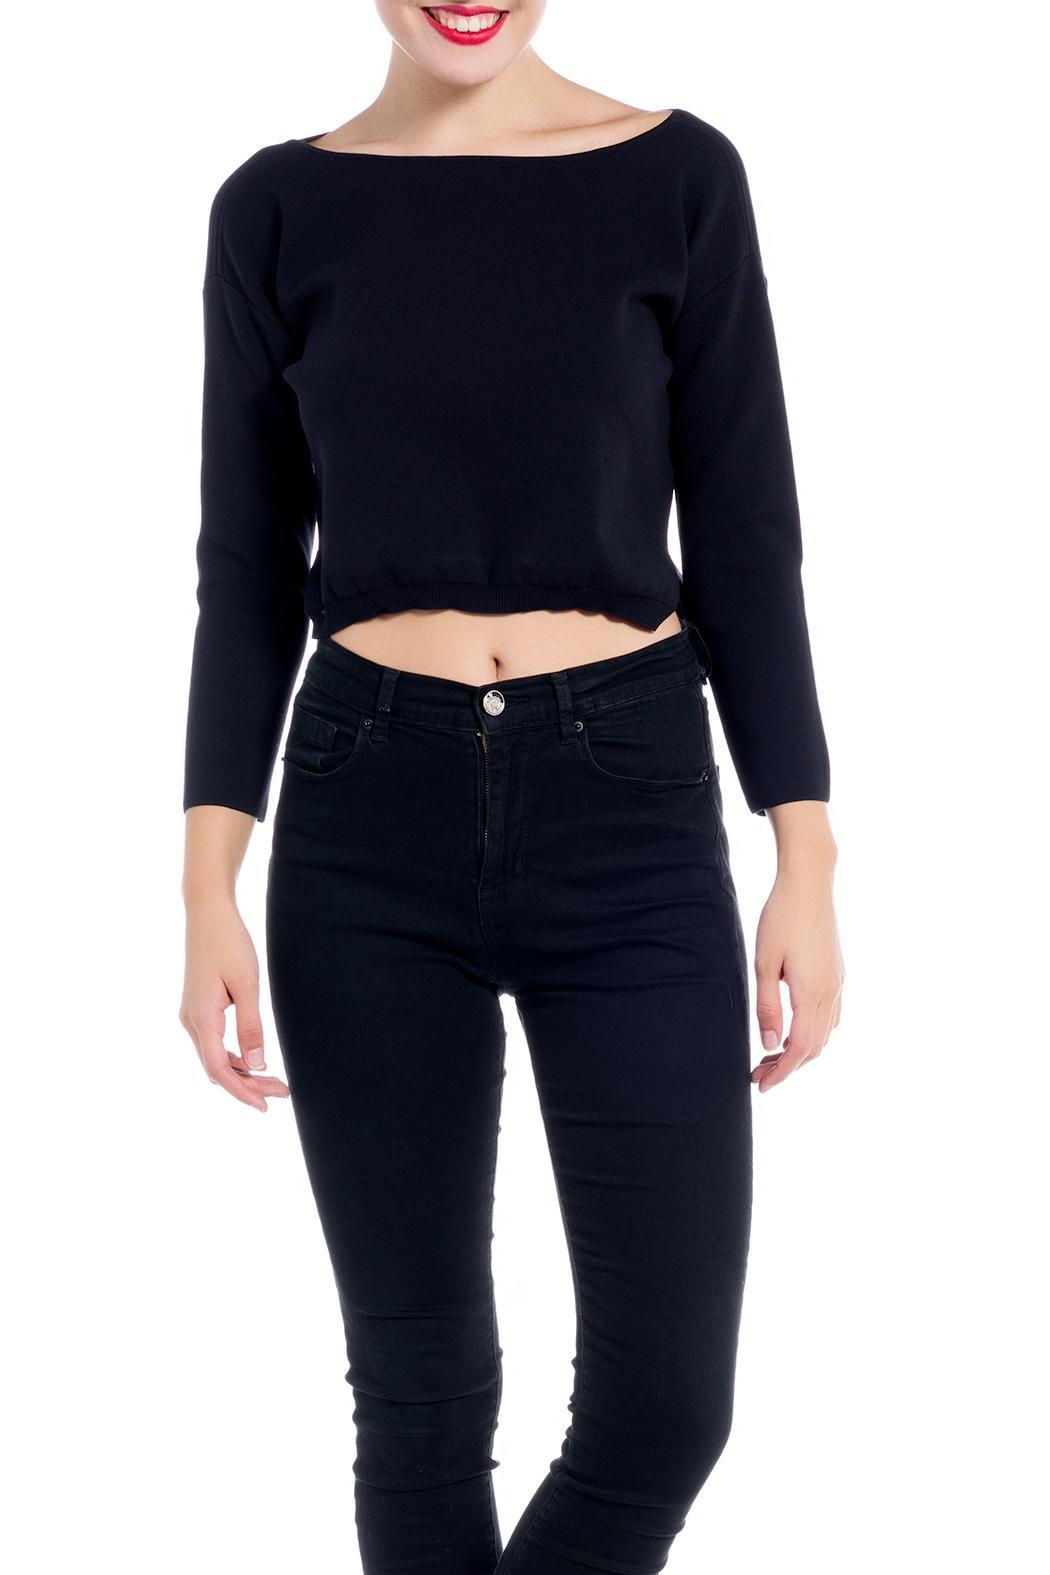 Charlie May Open Neck Sweater - Main Image